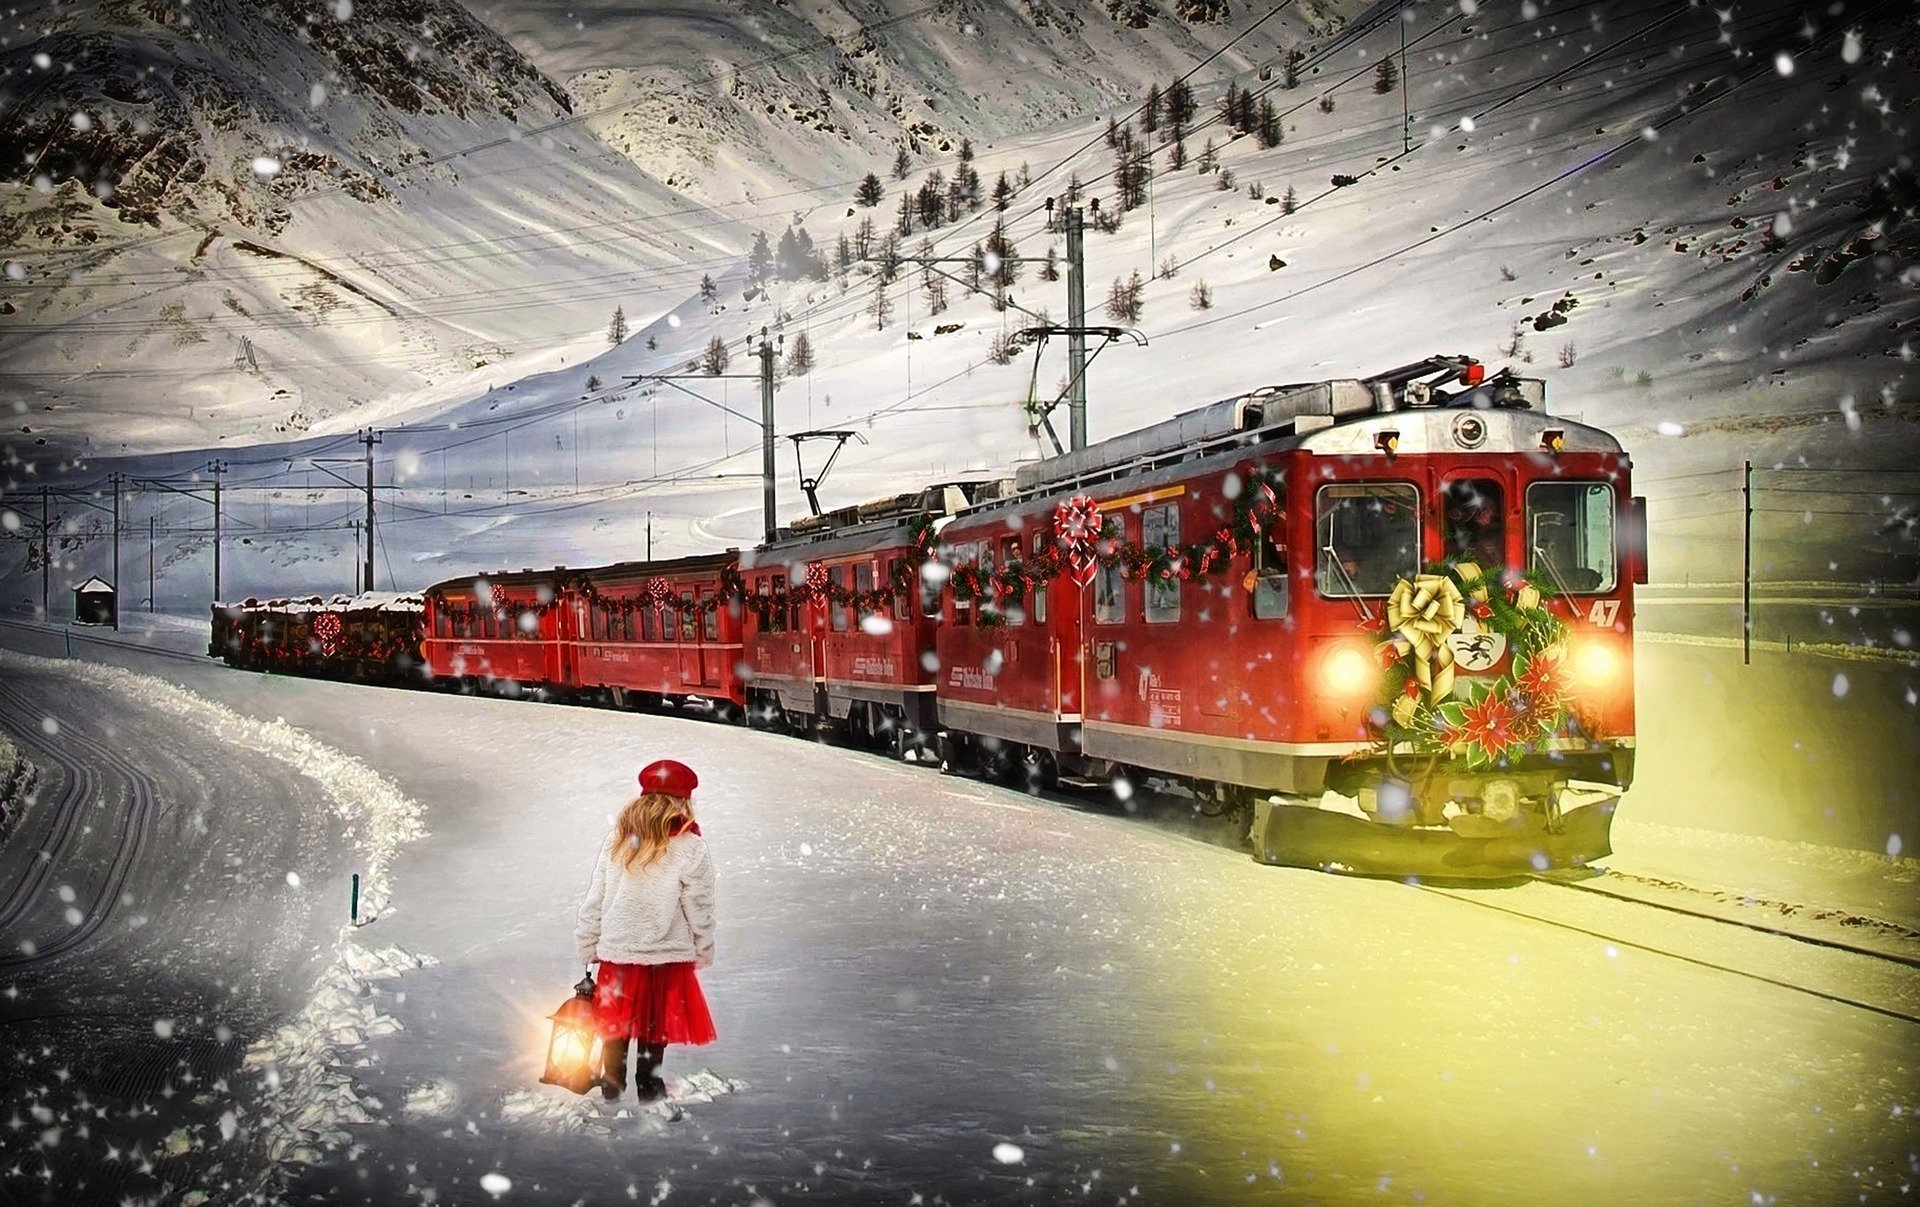 Polar Express train and child in snow